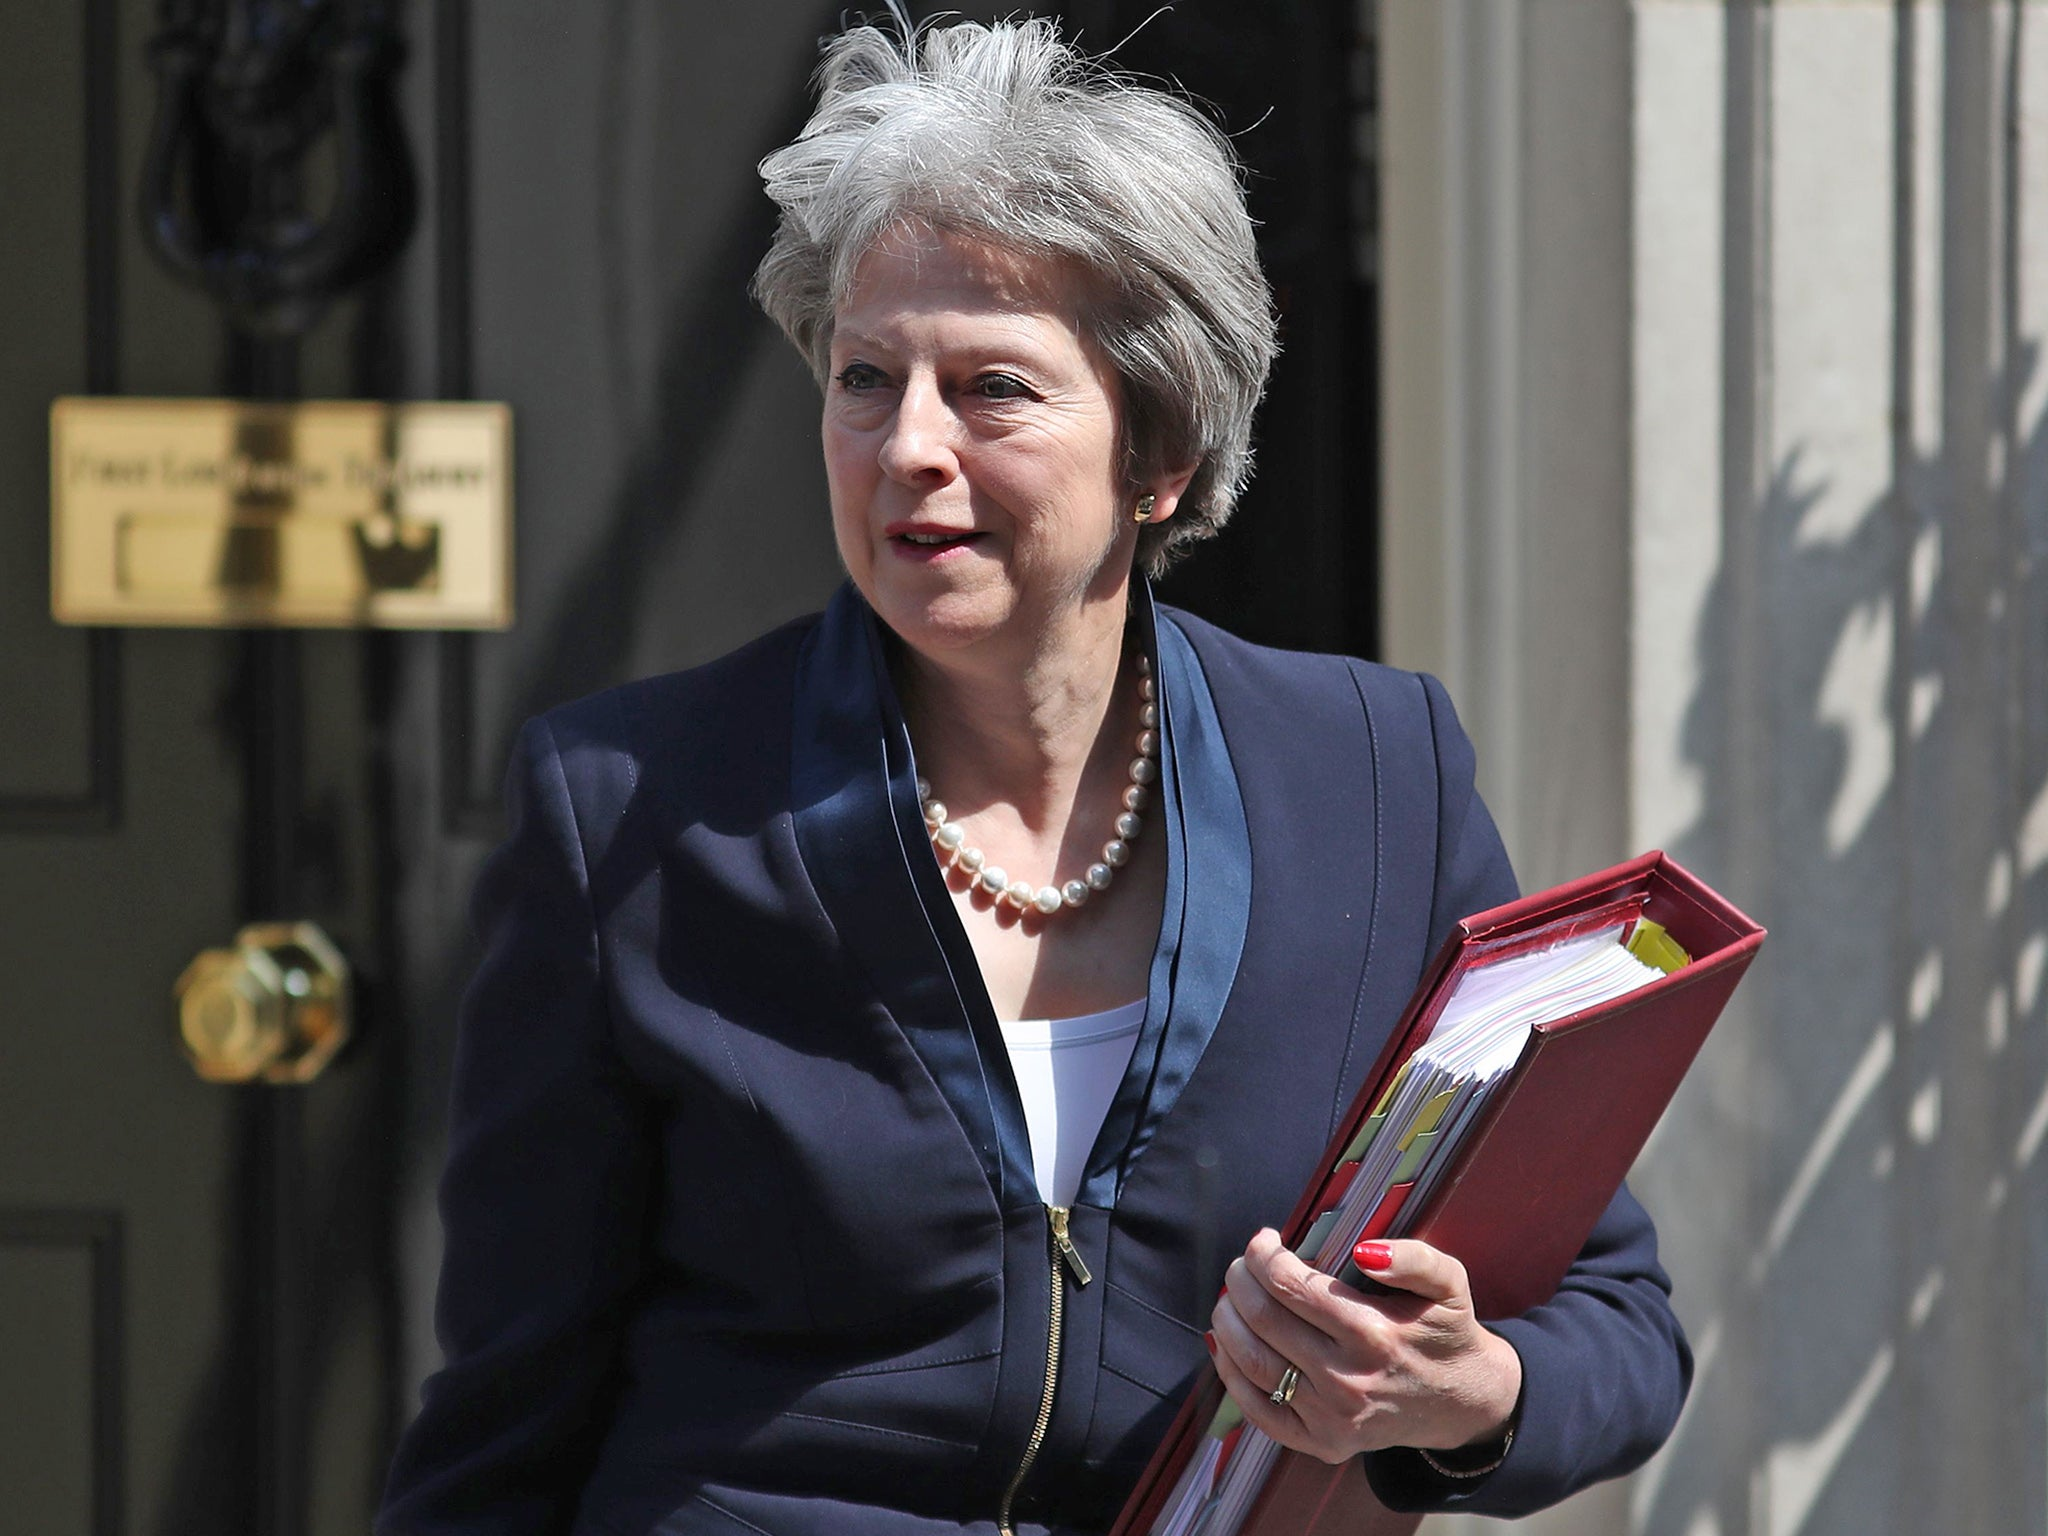 Theresa May says government is set to publish results of 'world's largest survey' of LGBT+ people